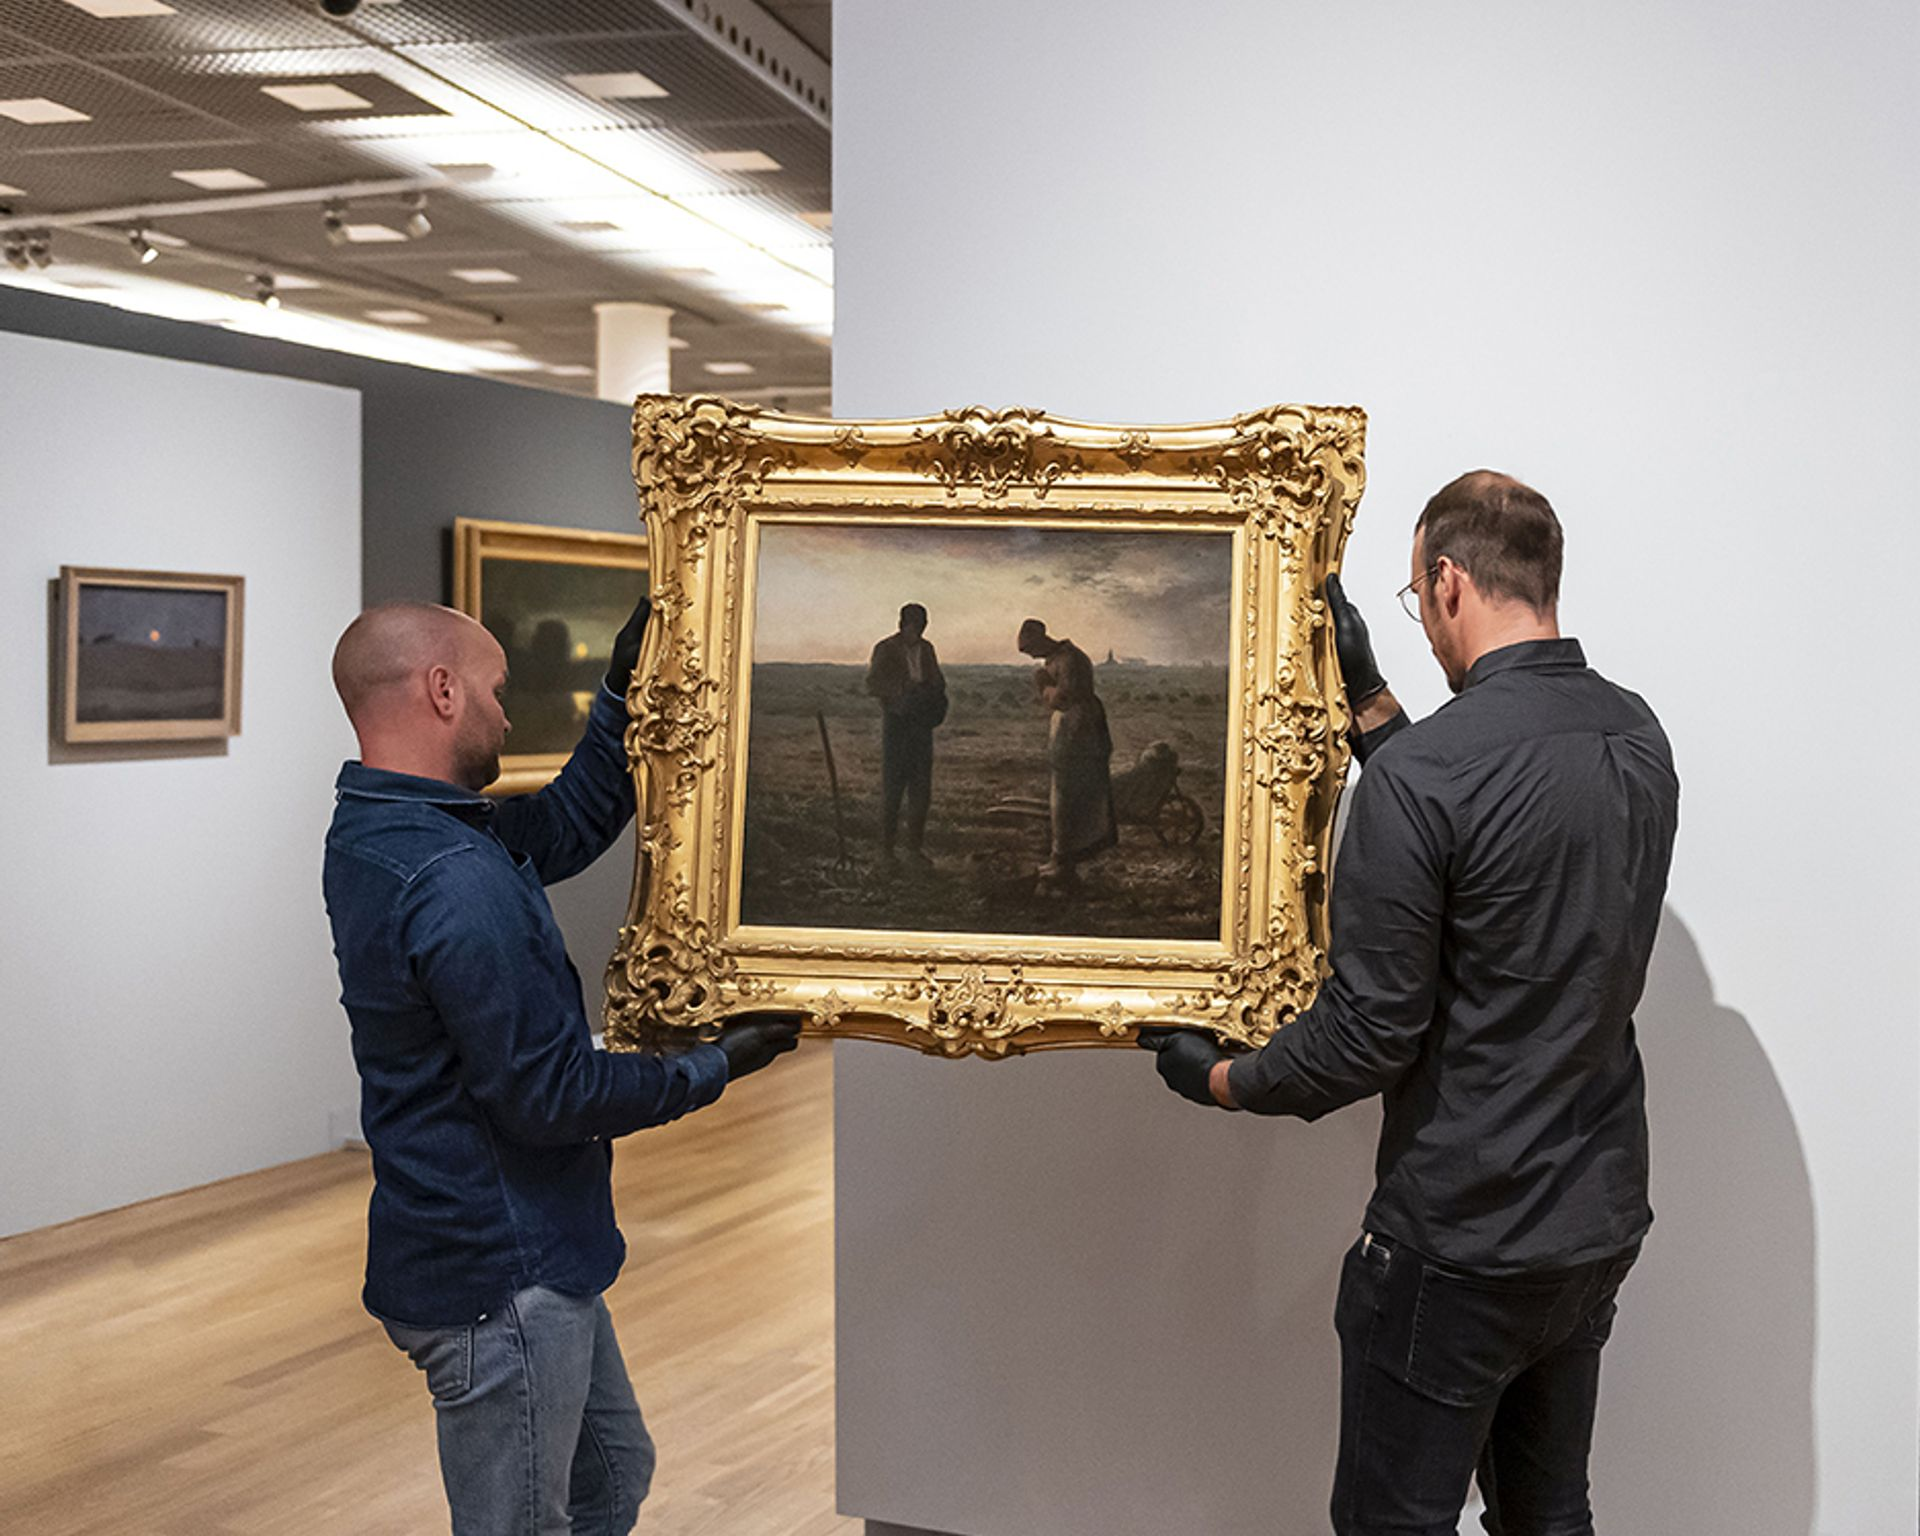 Jean-François Millet's The Angelus (1857-59) being hung at the Van Gogh Museum, Amsterdam, on loan from the Musée d'Orsay, Paris Photo: Jan-Kees Steenman/SeeItYourself